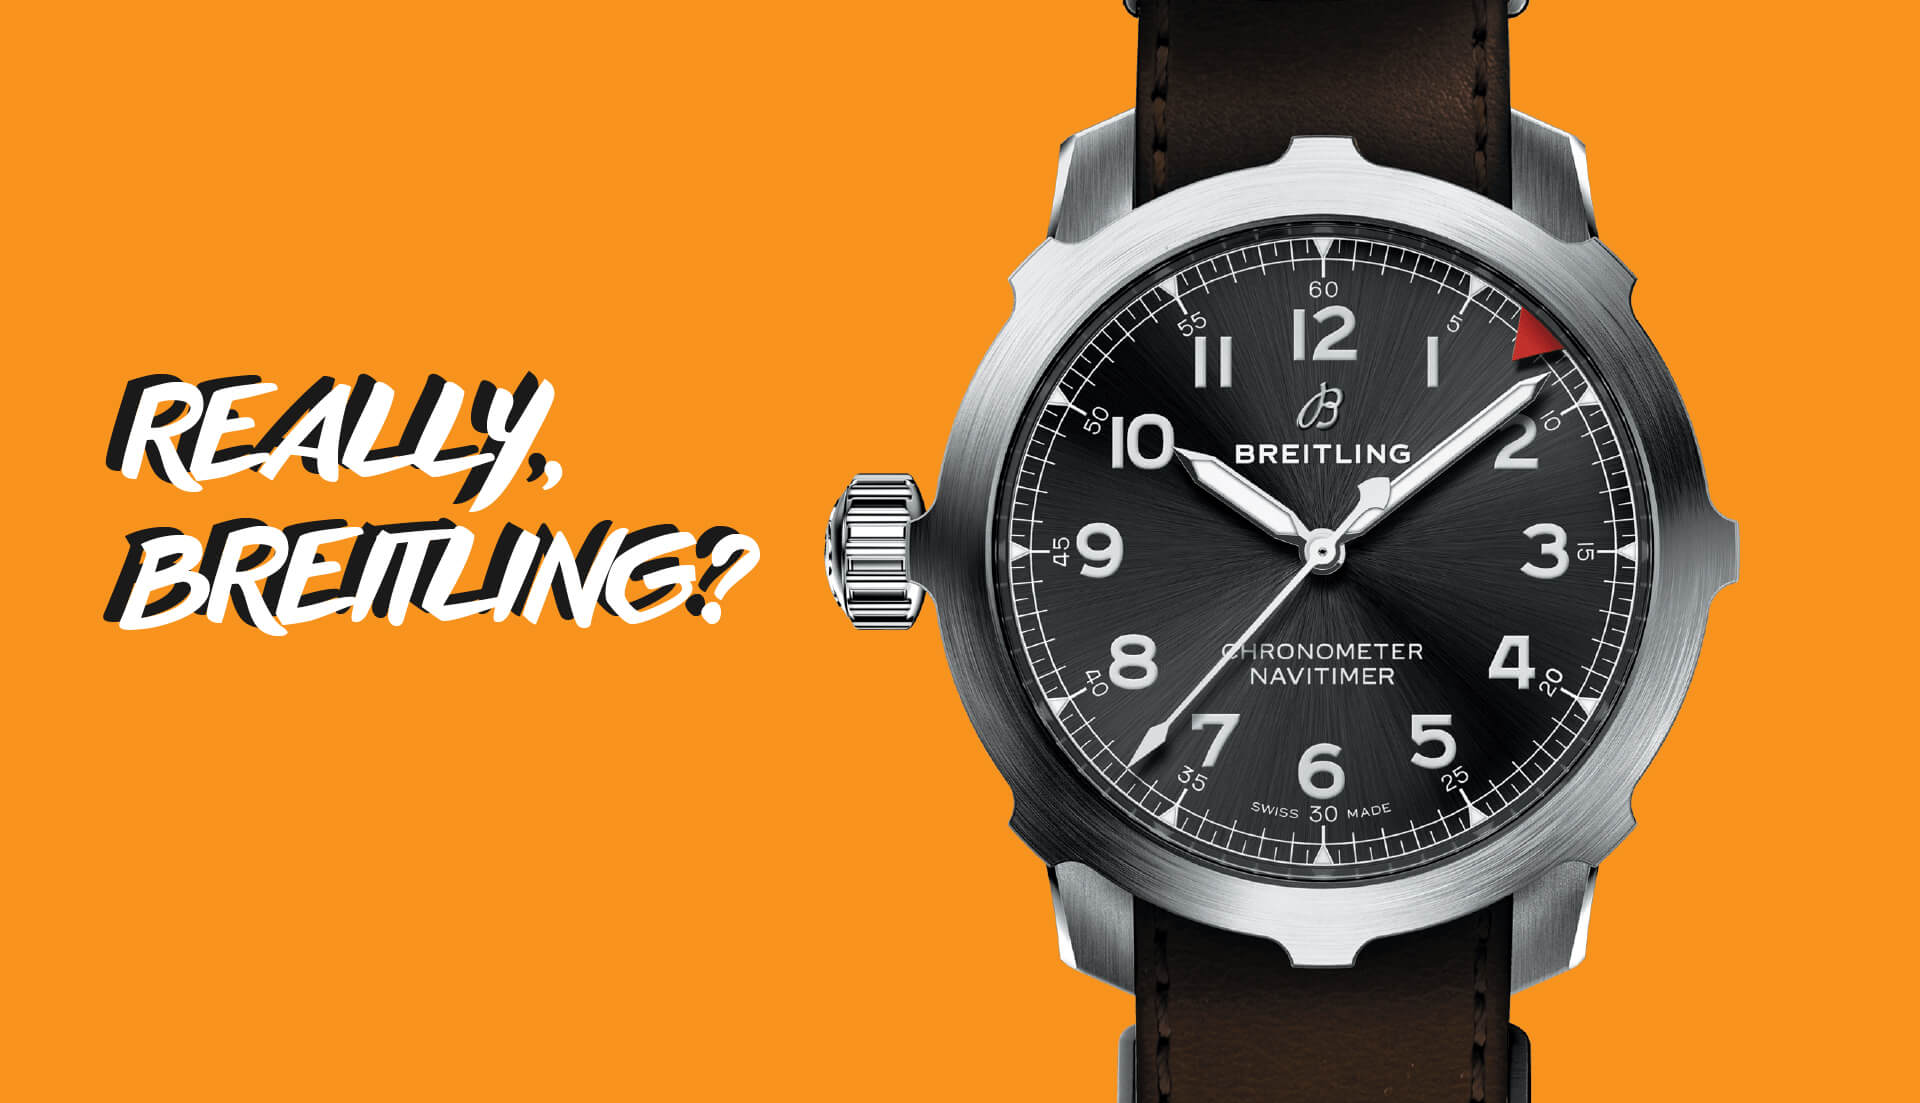 RANT&H: Breitling's New Super 8 Is A Fraud